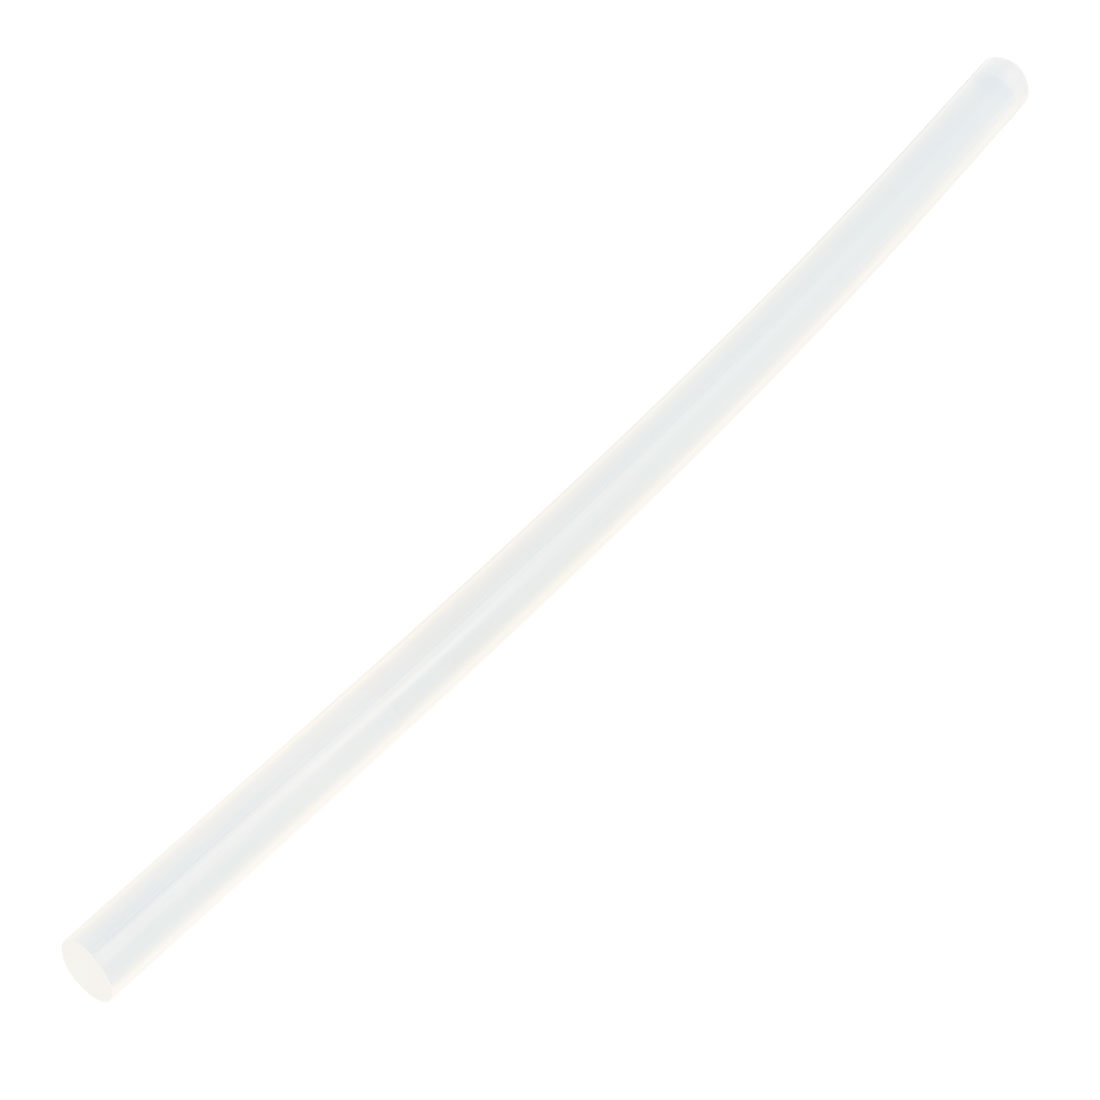 11mm x 260mm Hot Melt Glue Adhesive Stick Clear for Electric Tool Heating Gun